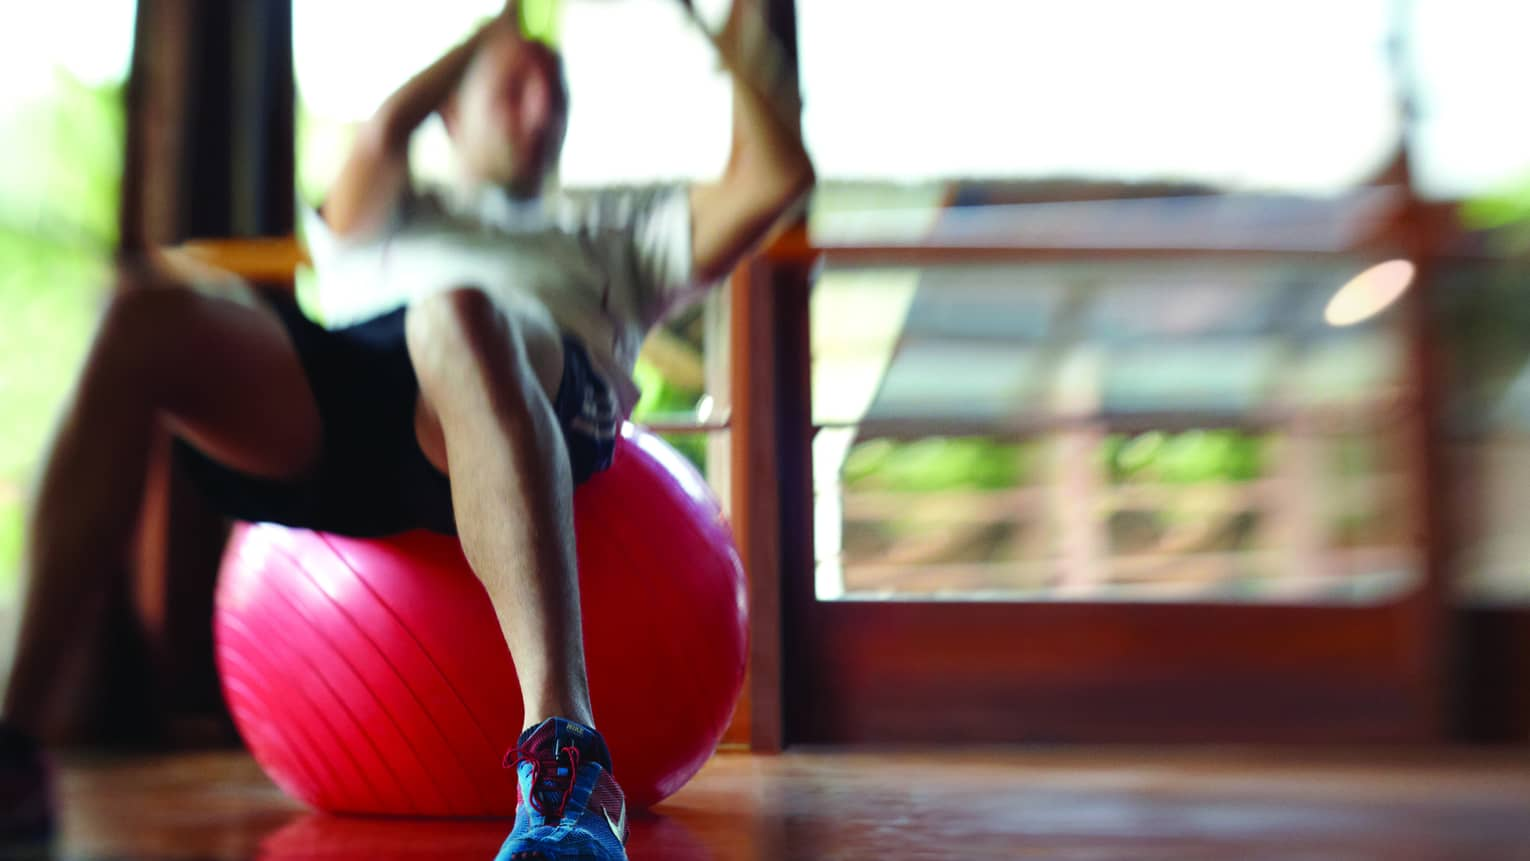 Blurry image of man in shorts and T-shirt doing sit-up on red pilates ball on wood floor